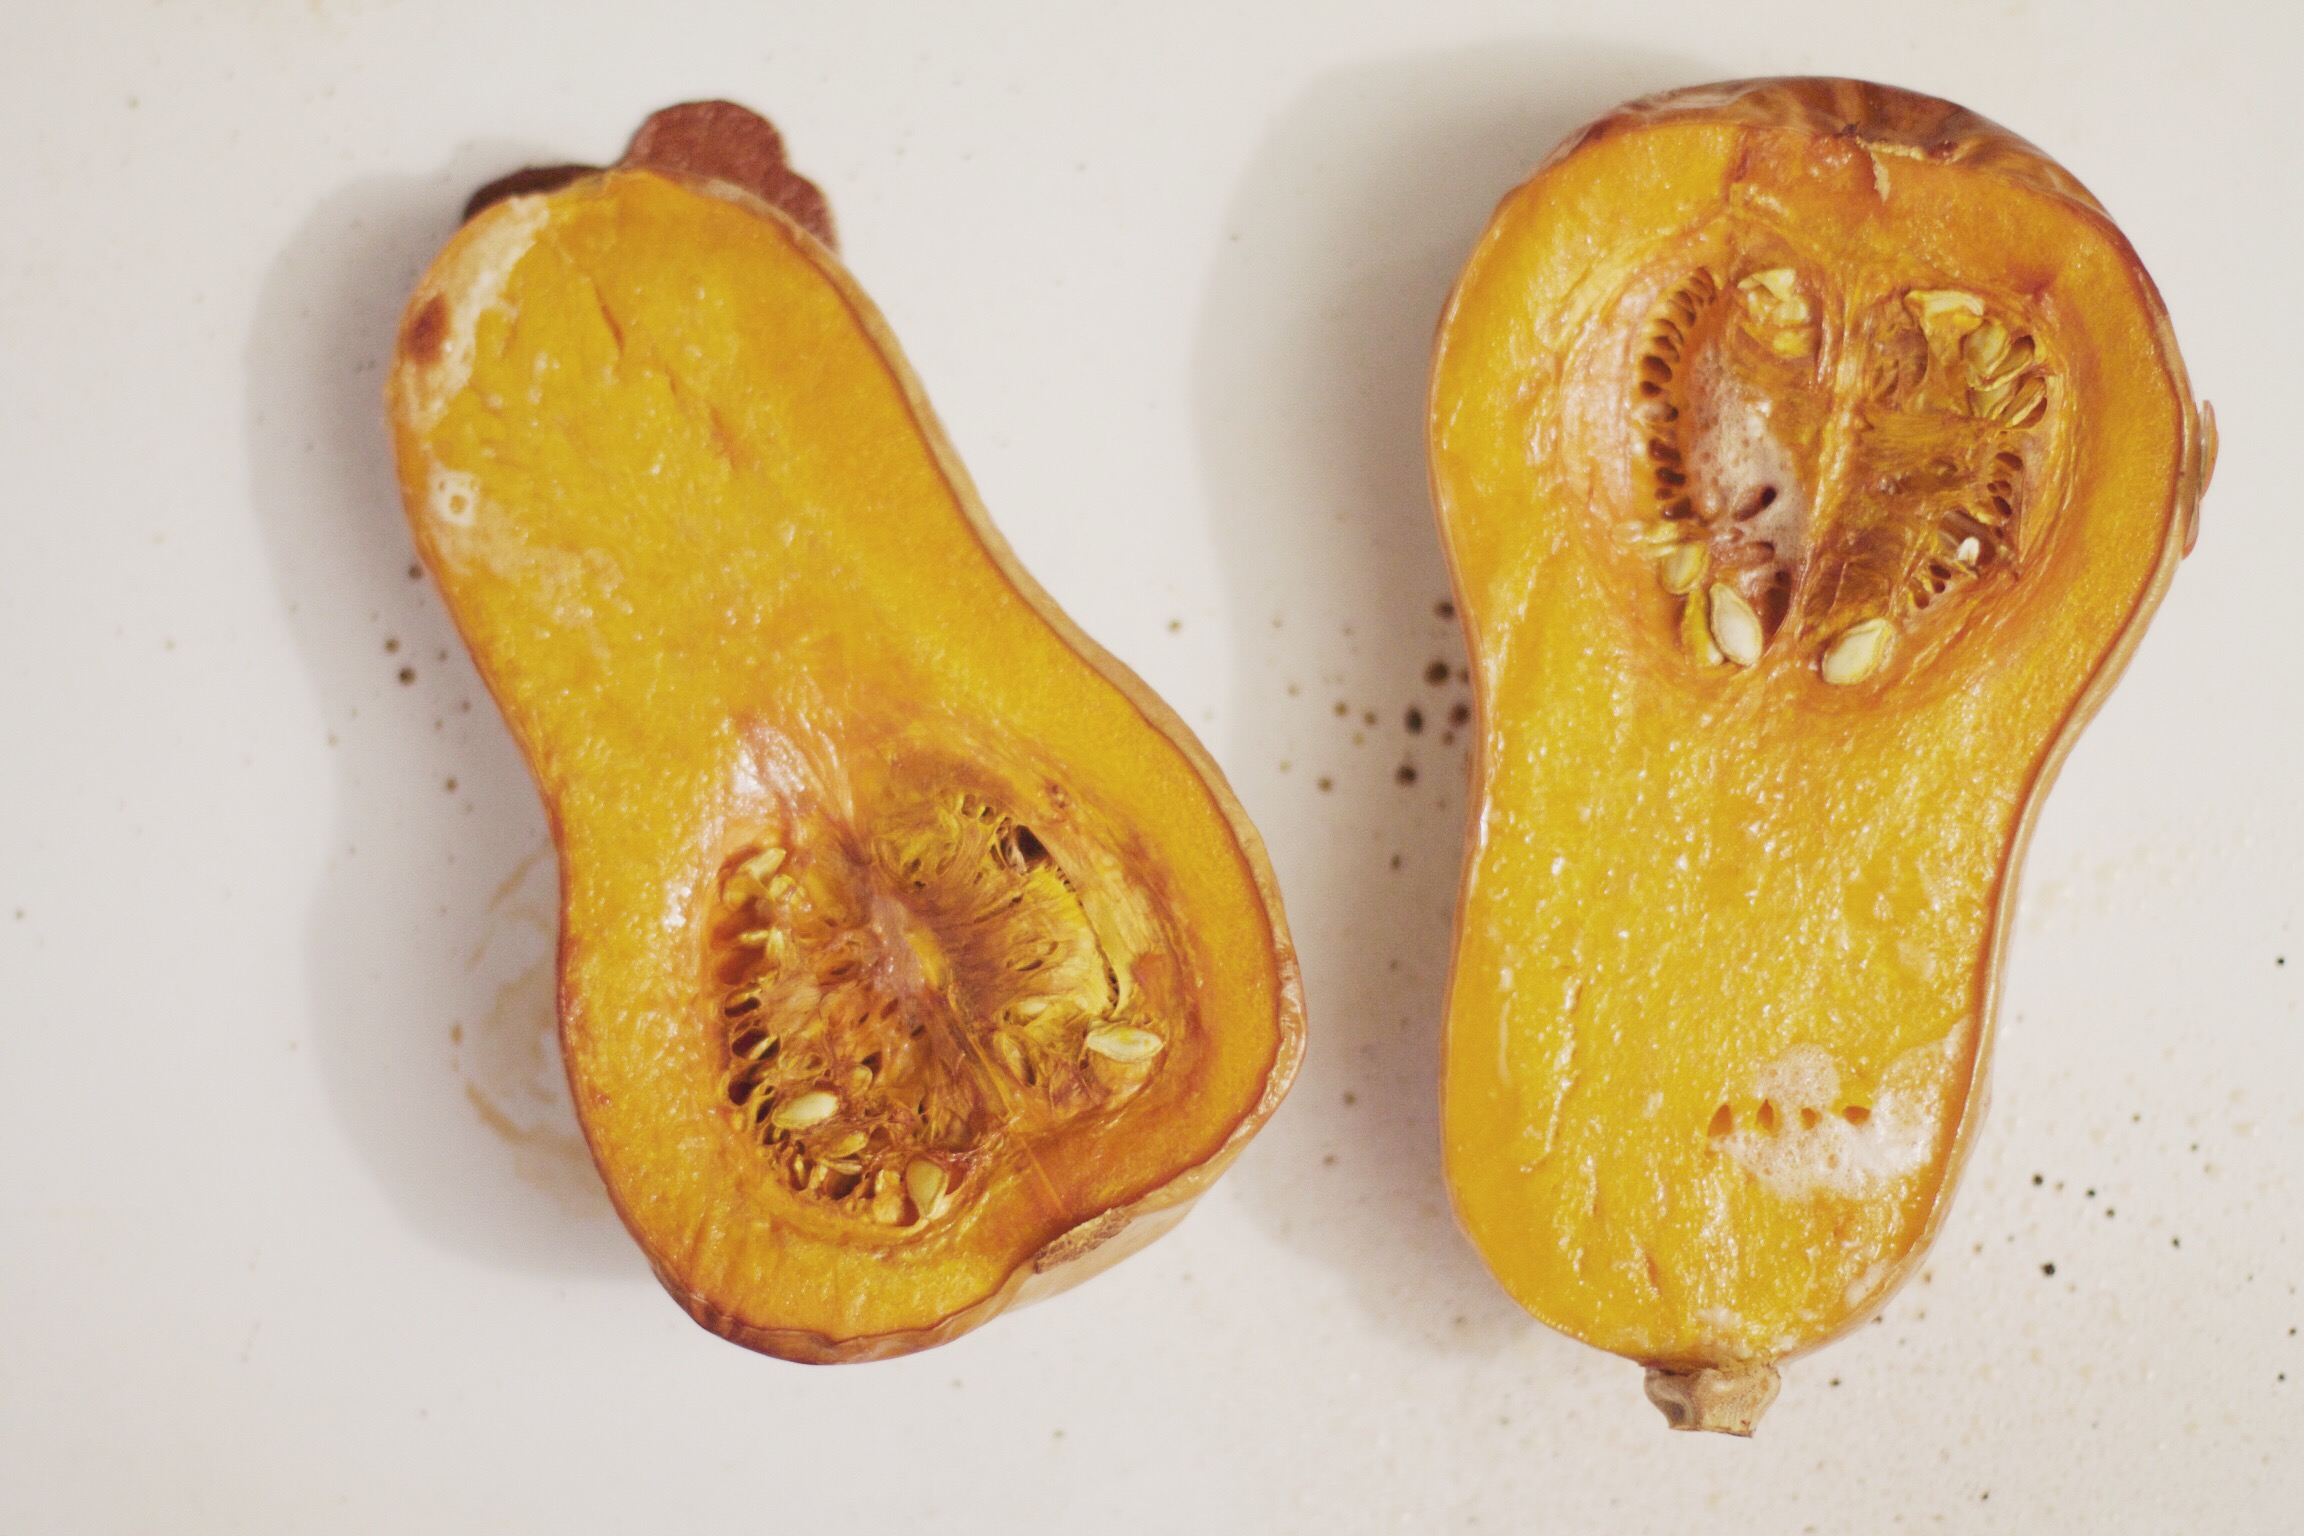 Preheat oven to 350 degrees fahrenheit, slice butternut squash in half, drizzle slightly with olive oil and once oven is heated place squash cut side down. Bake at 350 degrees F for about 60 minutes. Squash should be fork tender and the skin should peel right off.